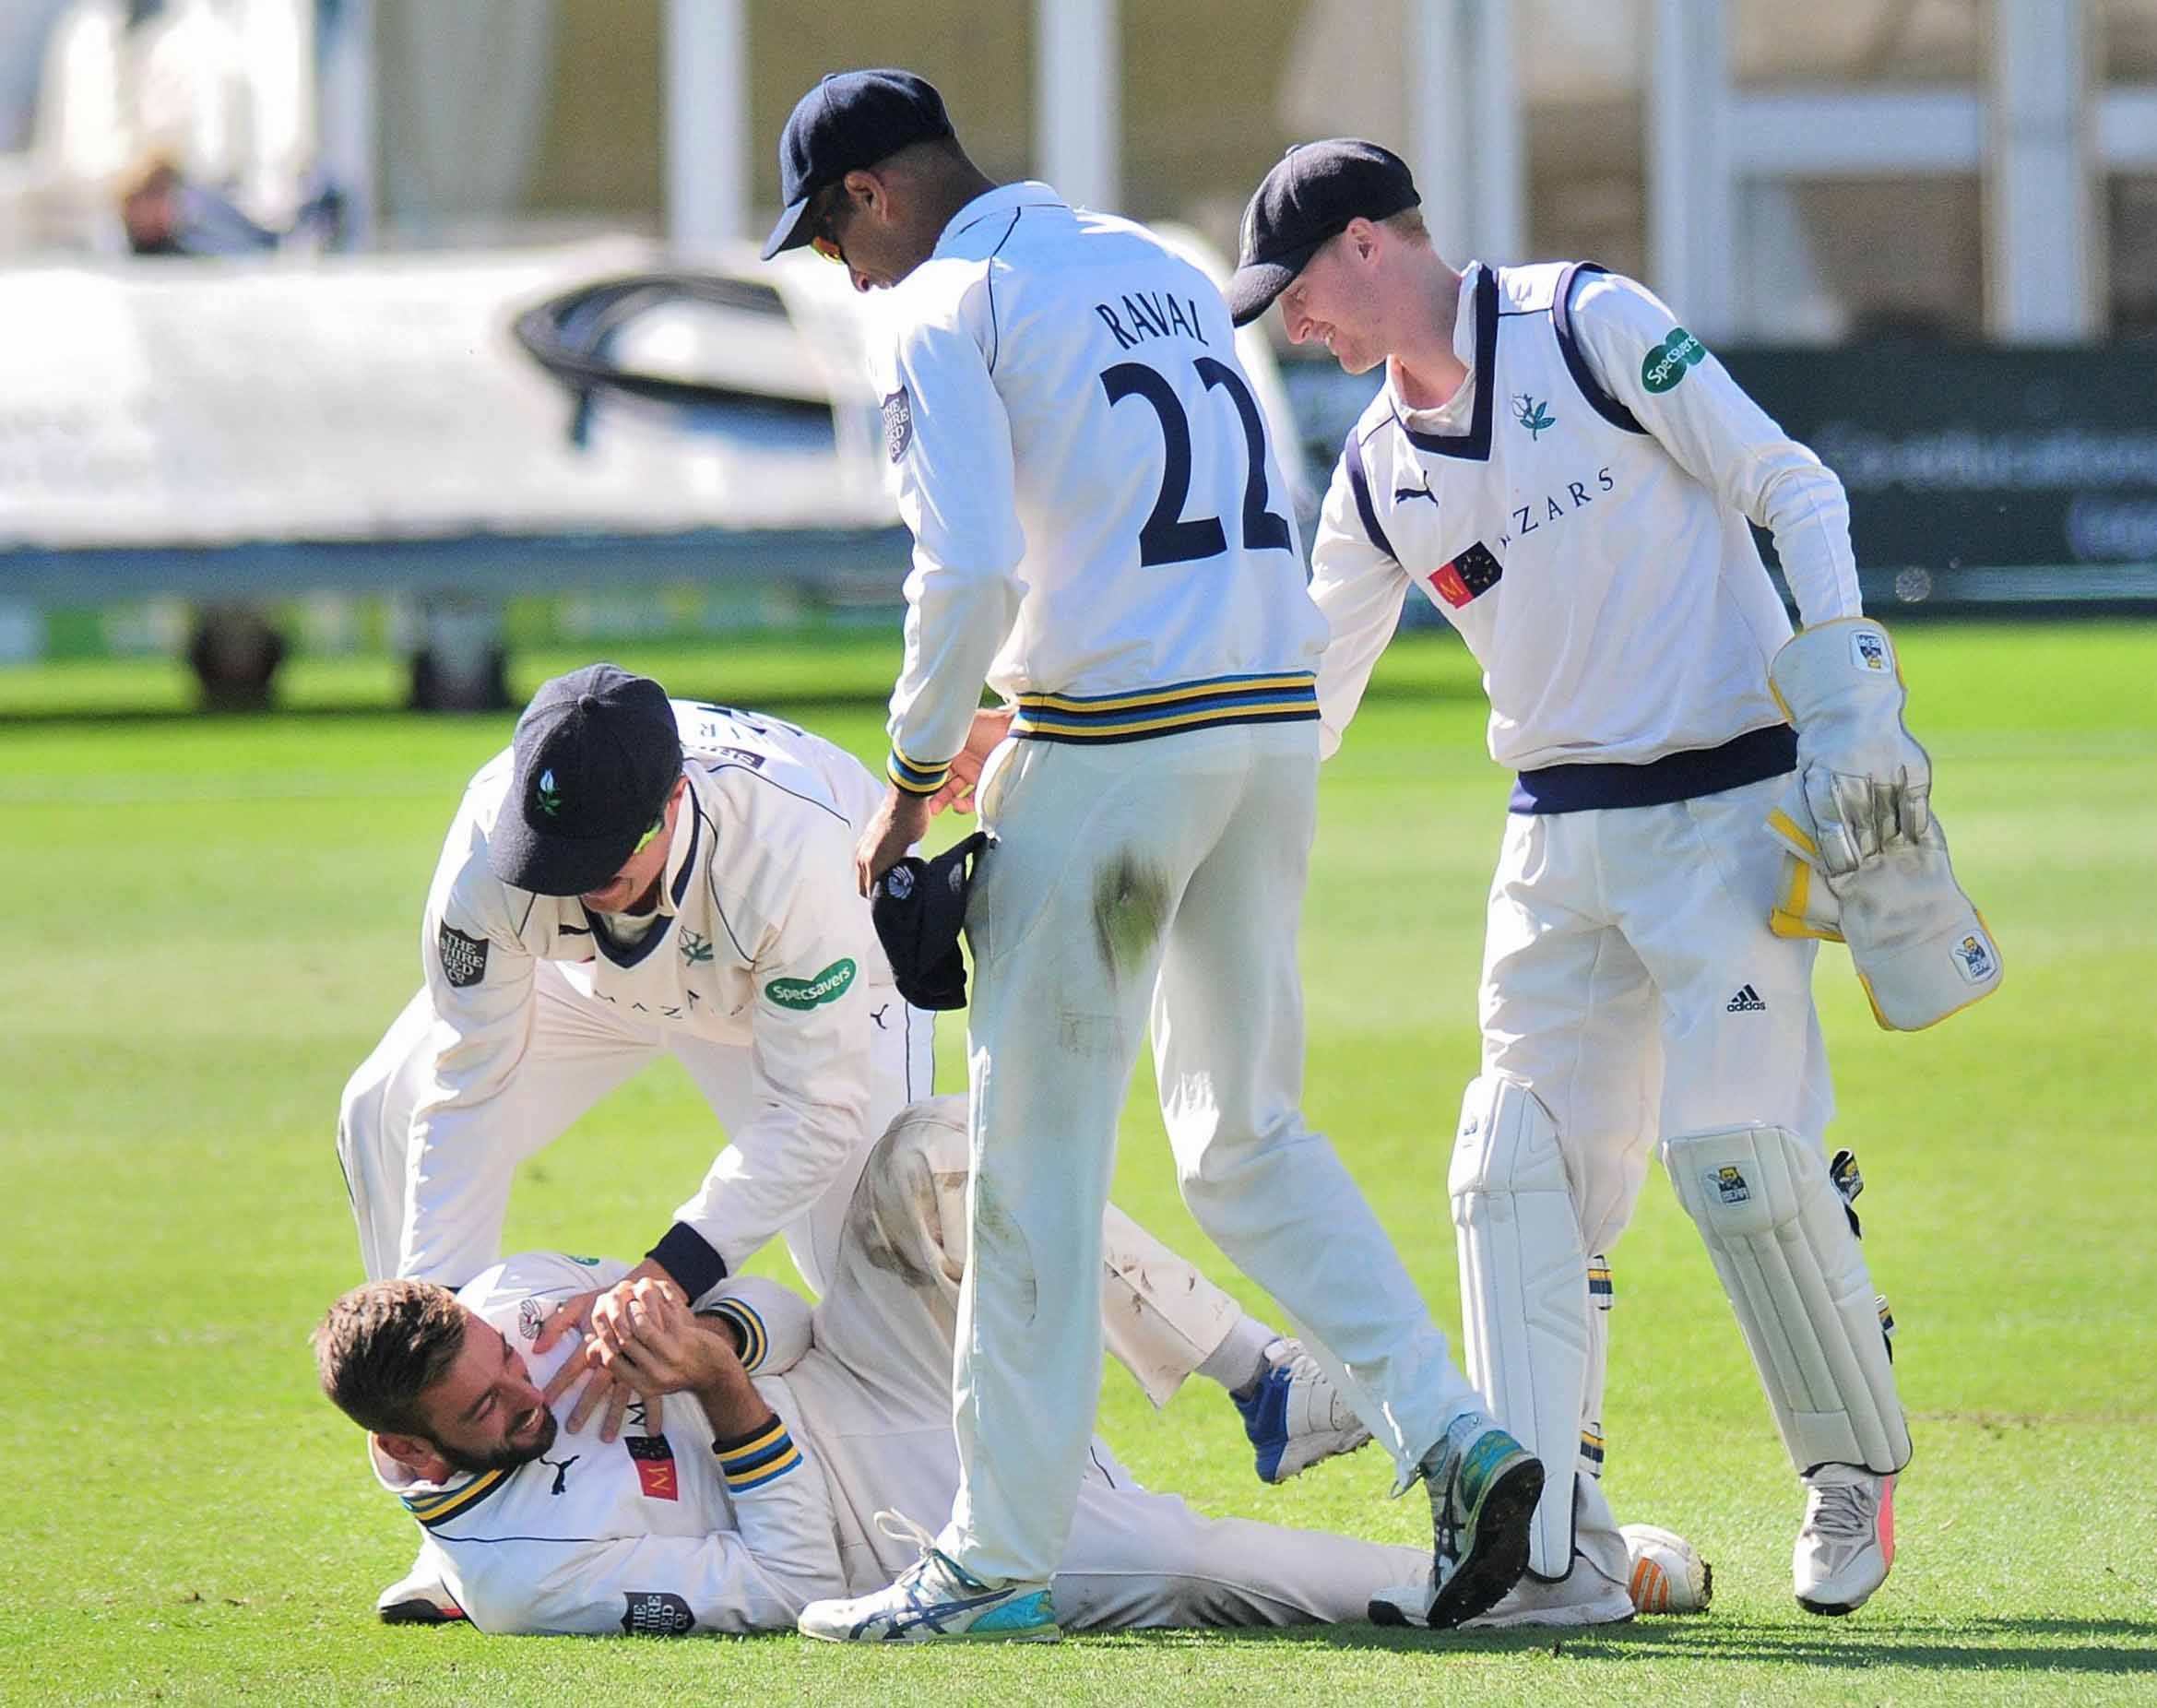 Action from day three of Worcestershire's County Championship match against Yorkshire at New Road, Worcester......Yorkshire players including Tom Kohler Cadmore (Top lft) congratulate Jack Leaning after he caught Ed Barnard for 0, from a Ben Coad deli